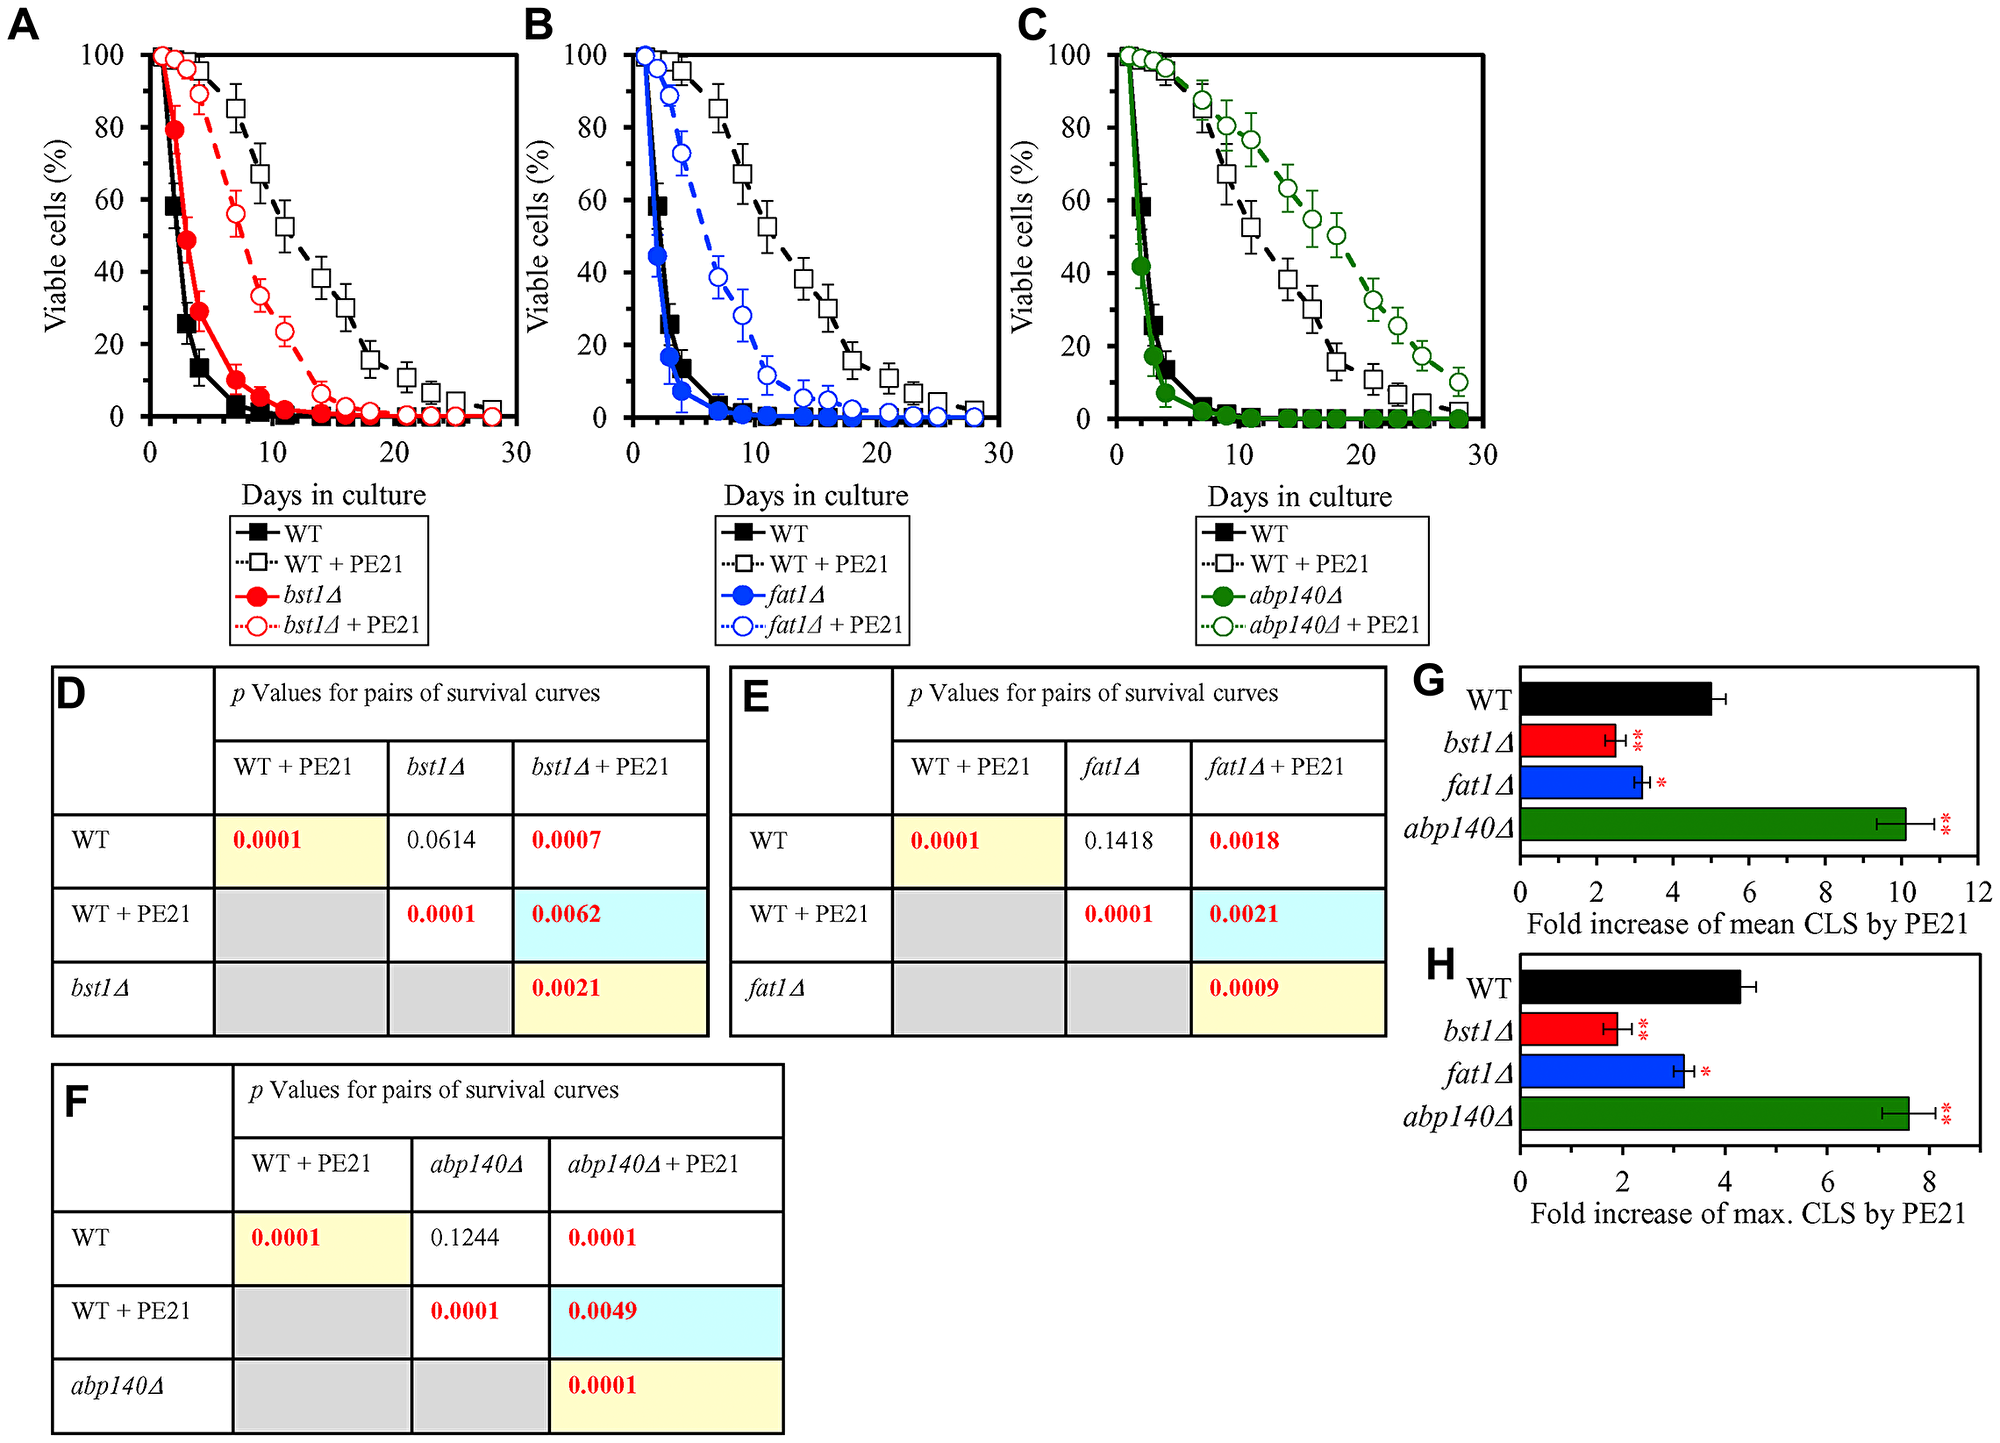 Single-gene-deletion mutations eliminating proteins that are upregulated by both PE21 and UPRER stimuli decrease the efficiency with which PE21 extends yeast longevity, while a single-gene-deletion mutation eliminating a protein that is downregulated by both PE21 and UPRER stimuli increases such efficiency.